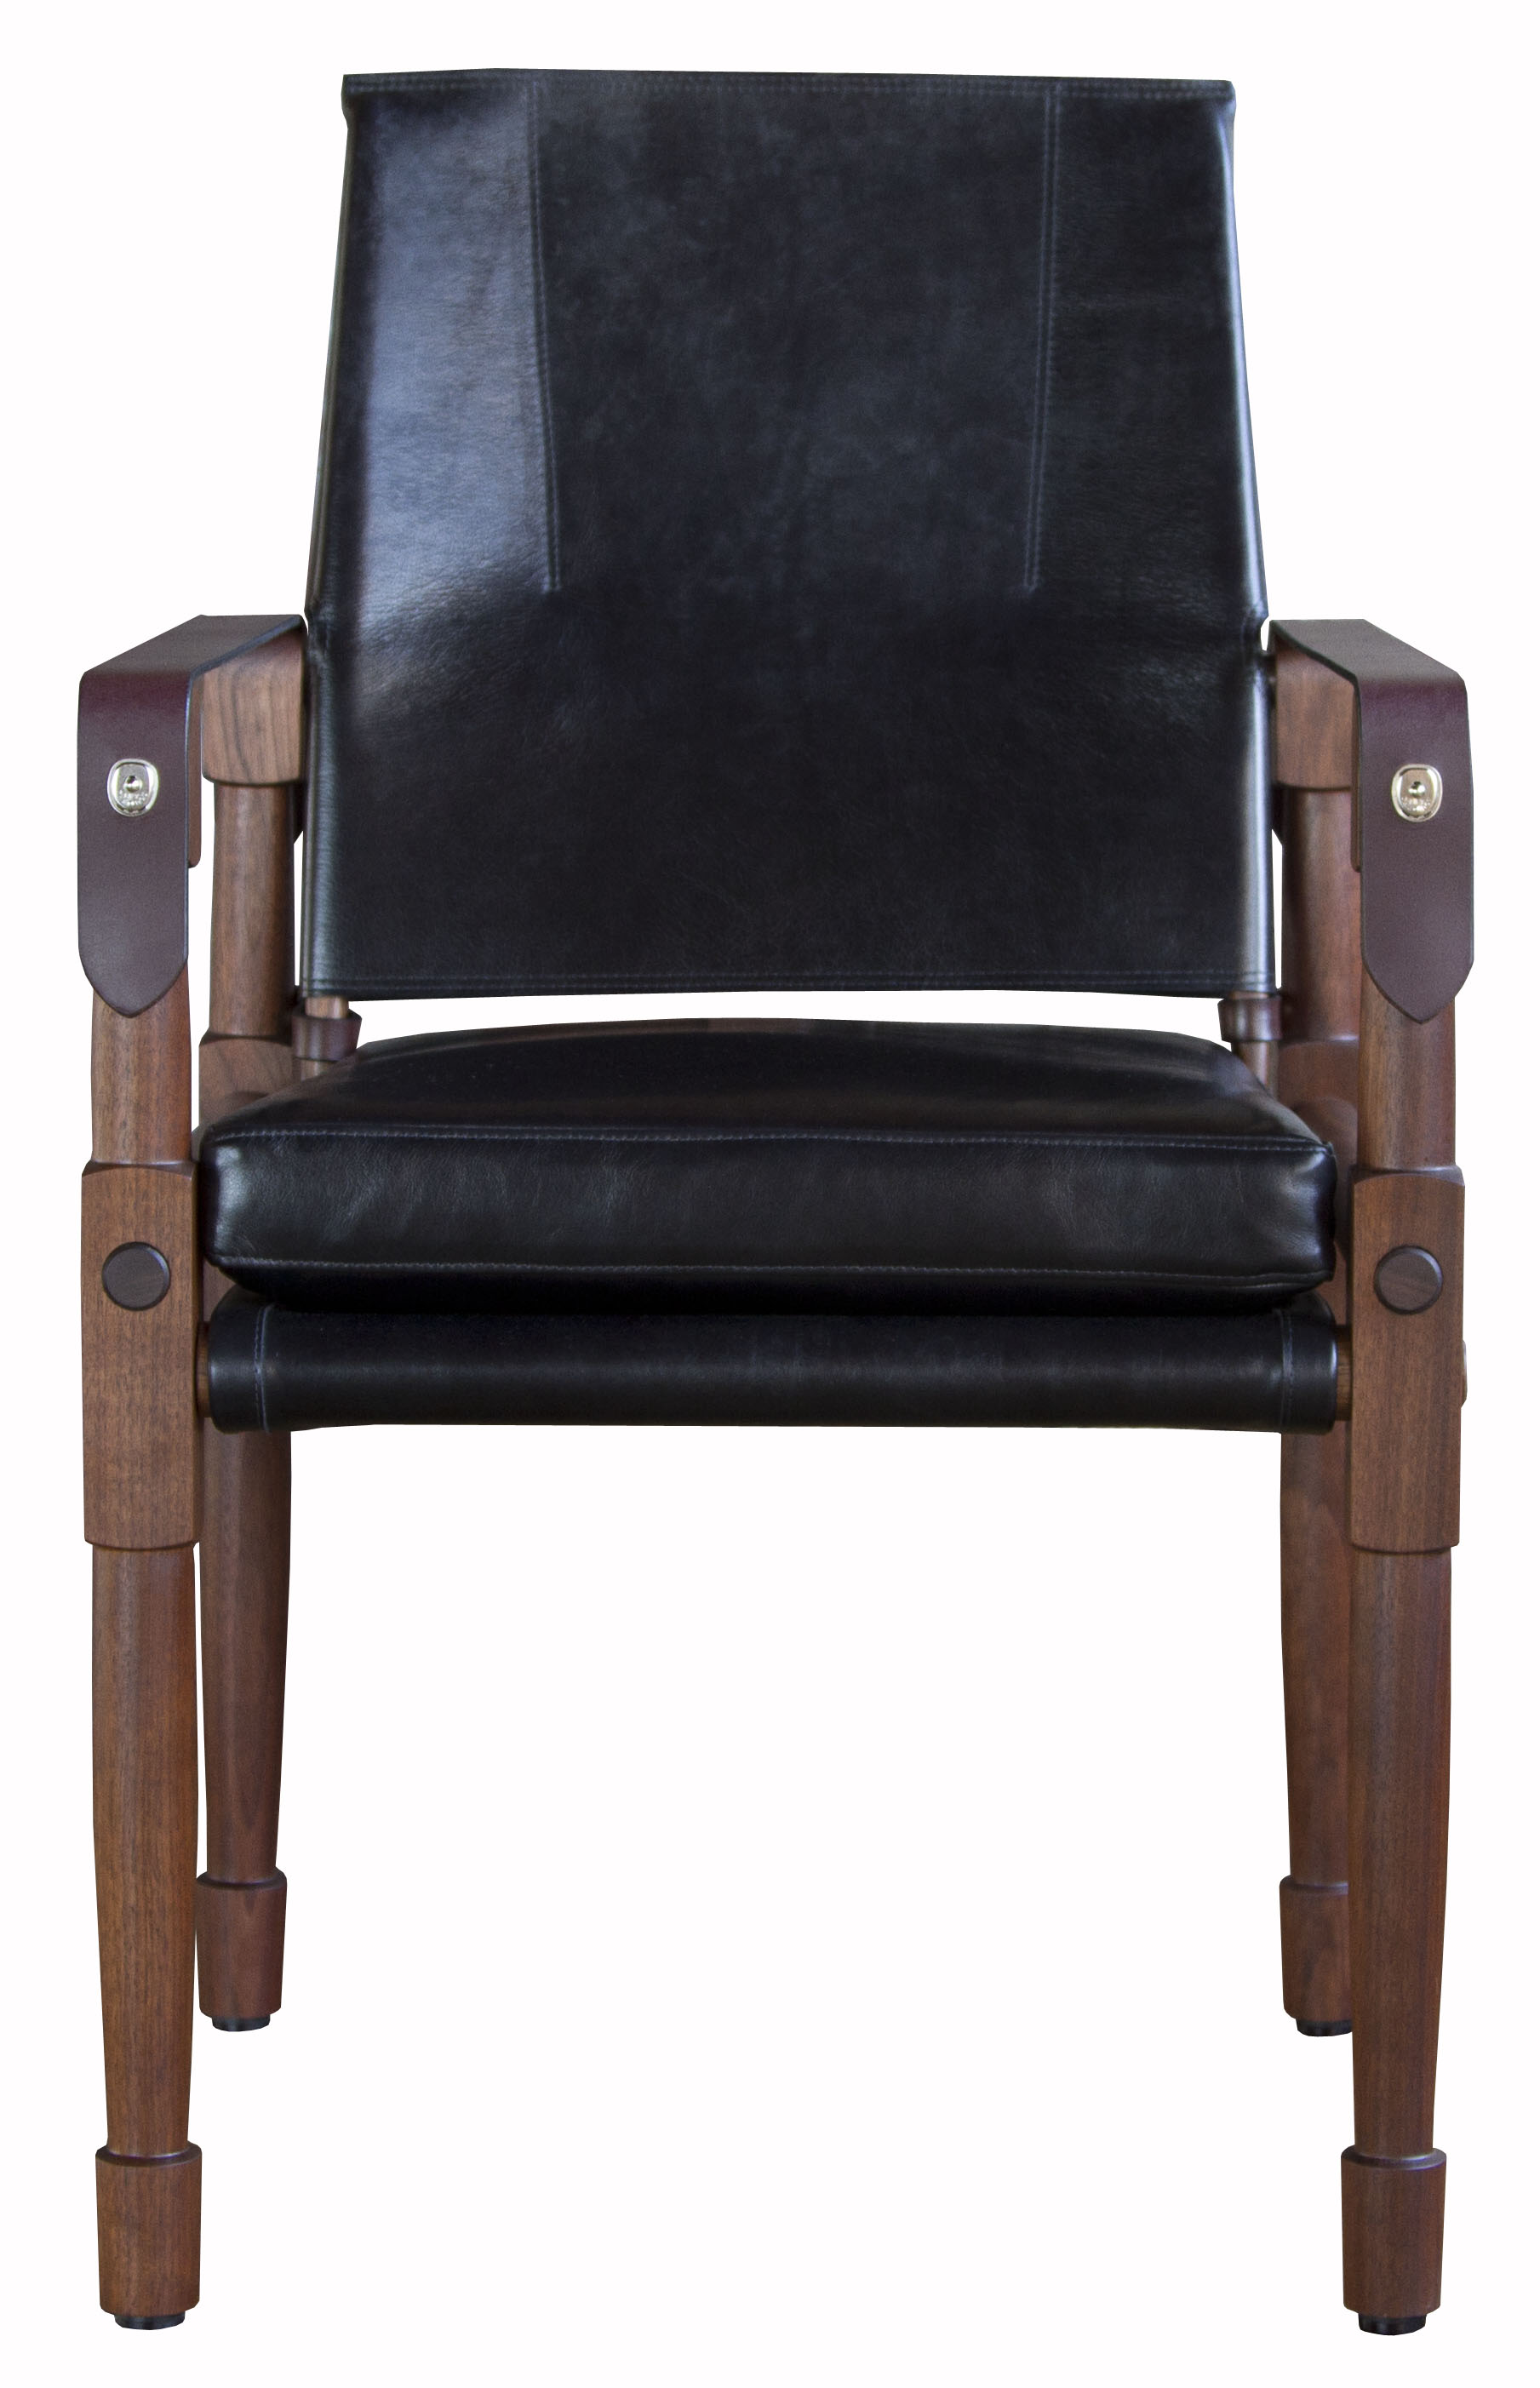 Oiled walnut with Moore & Giles Notting Hill: black and havana English bridle leather straps  10